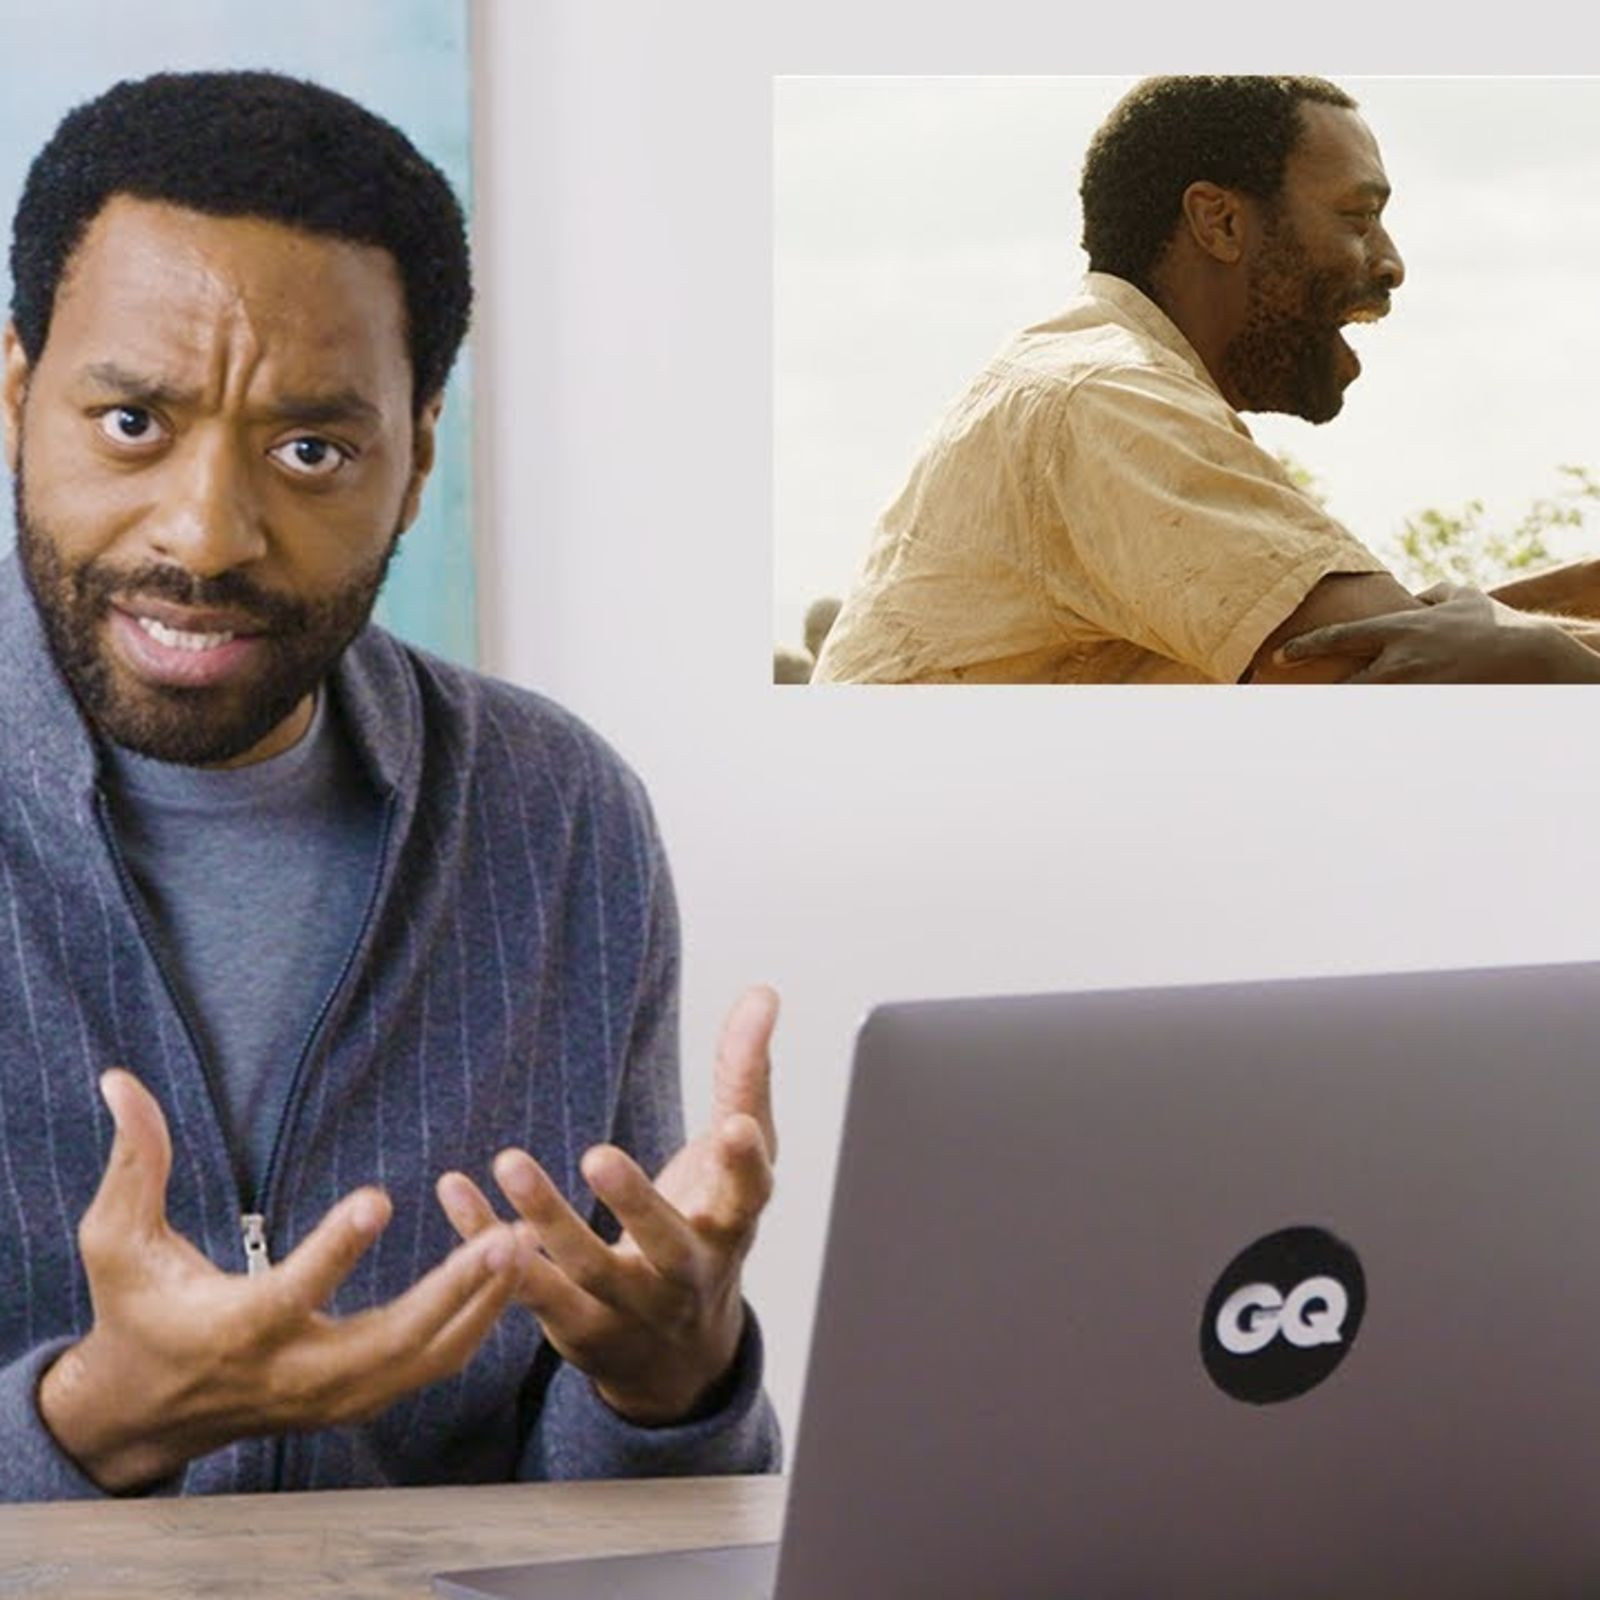 Chiwetel Ejiofor reacts to The Boy Who Harnessed The Wind